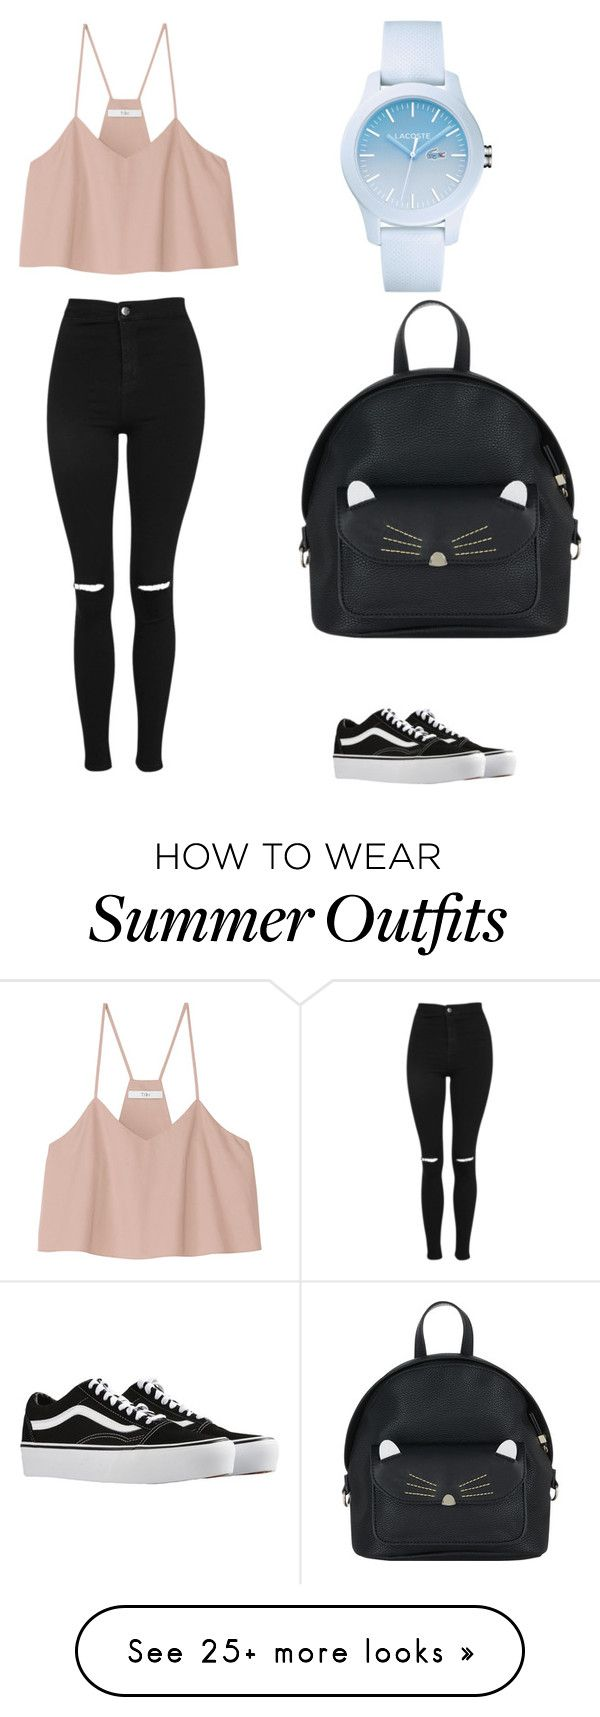 """Summer outfit"" by juste20052005 on Polyvore featuring Topshop, TIBI, ..."